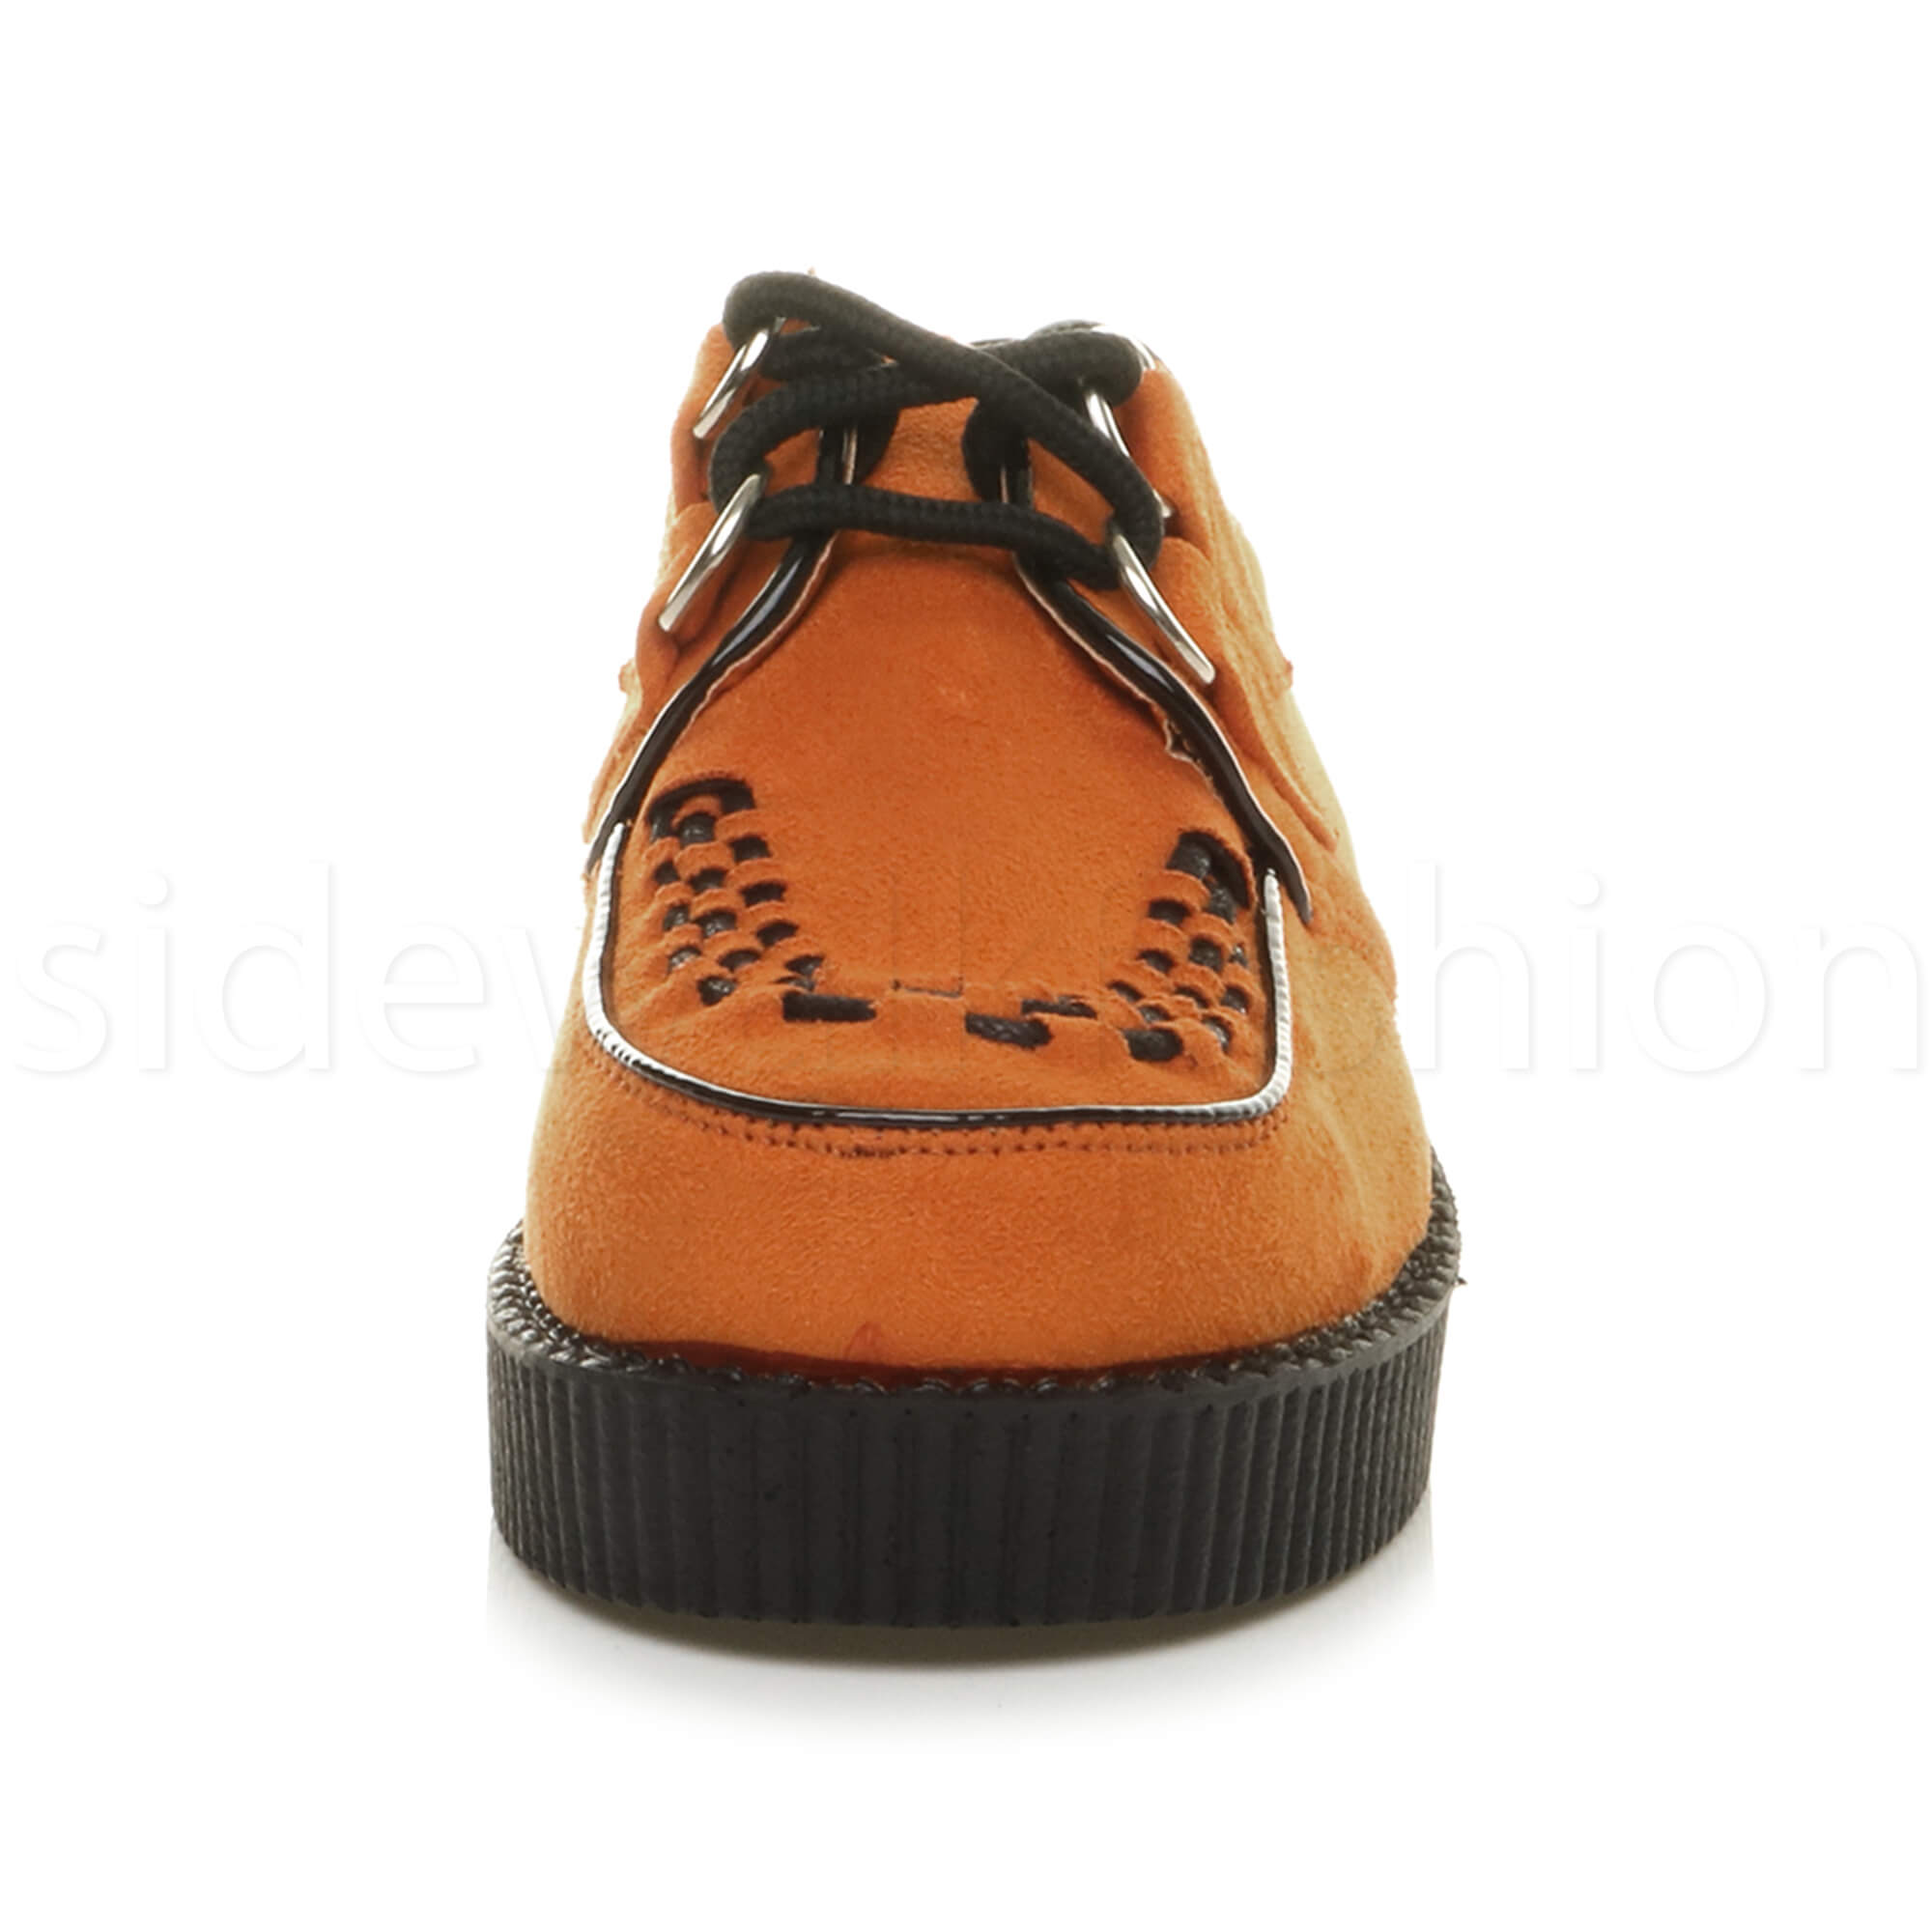 Womens-ladies-flat-platform-wedge-lace-up-goth-punk-creepers-shoes-boots-size miniatuur 52